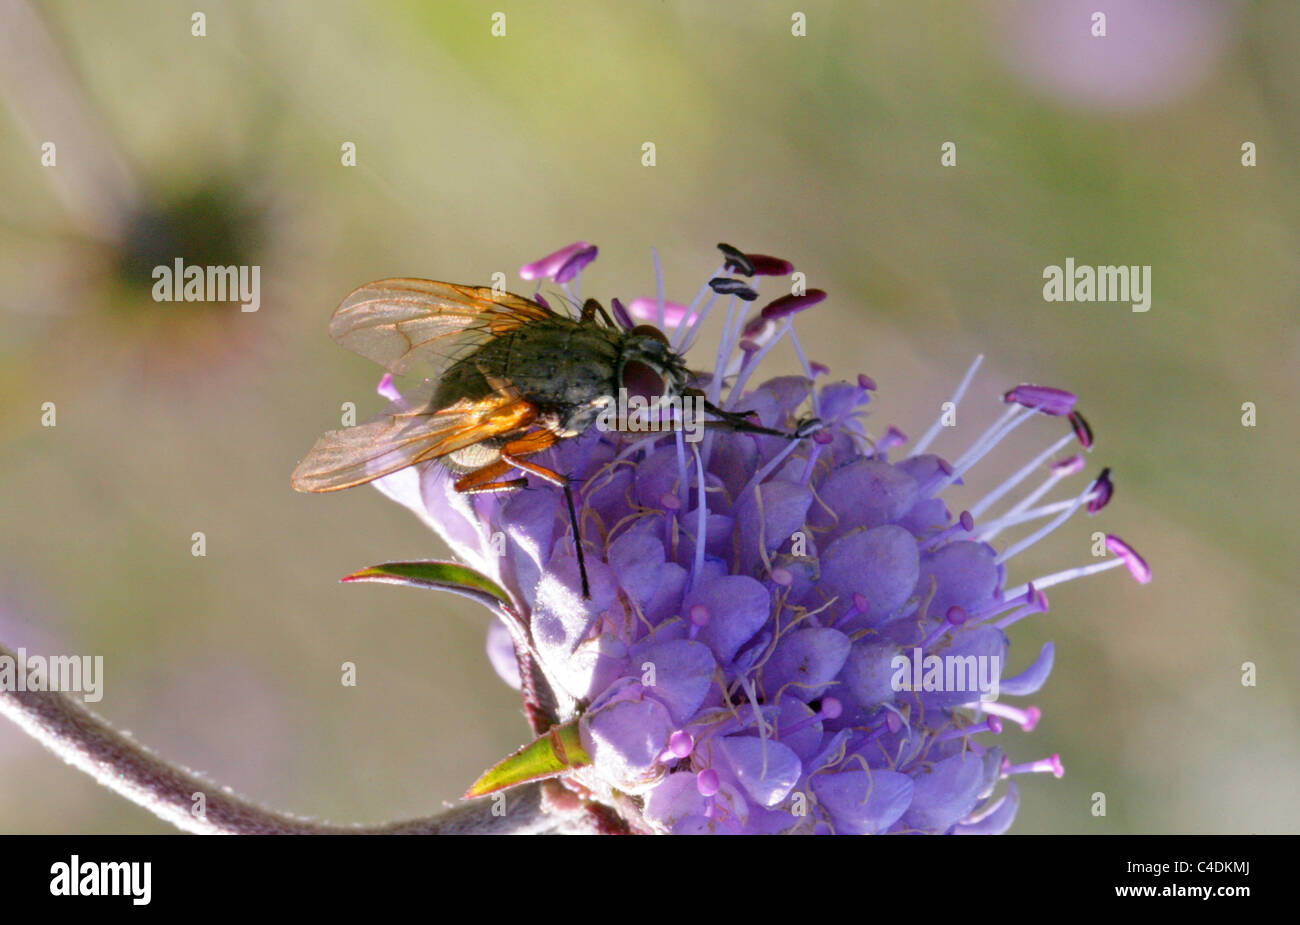 A Muscid Fly on a Devil's-bit Scabius Flower. - Stock Image